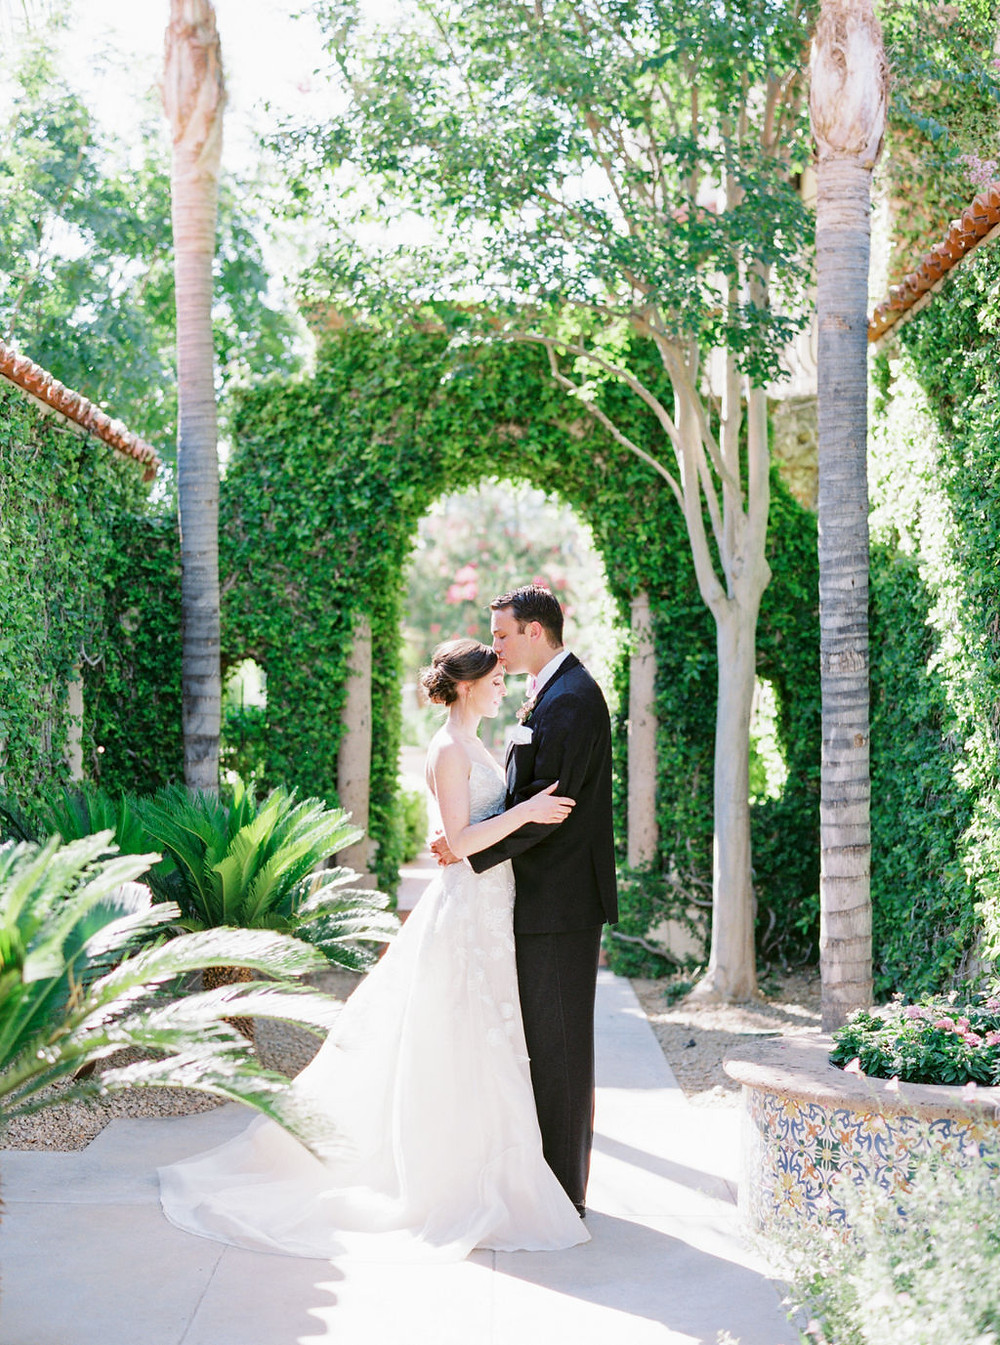 Elegant Scottsdale, AZ elopement. Colorful micro-wedding for two lovebirds.